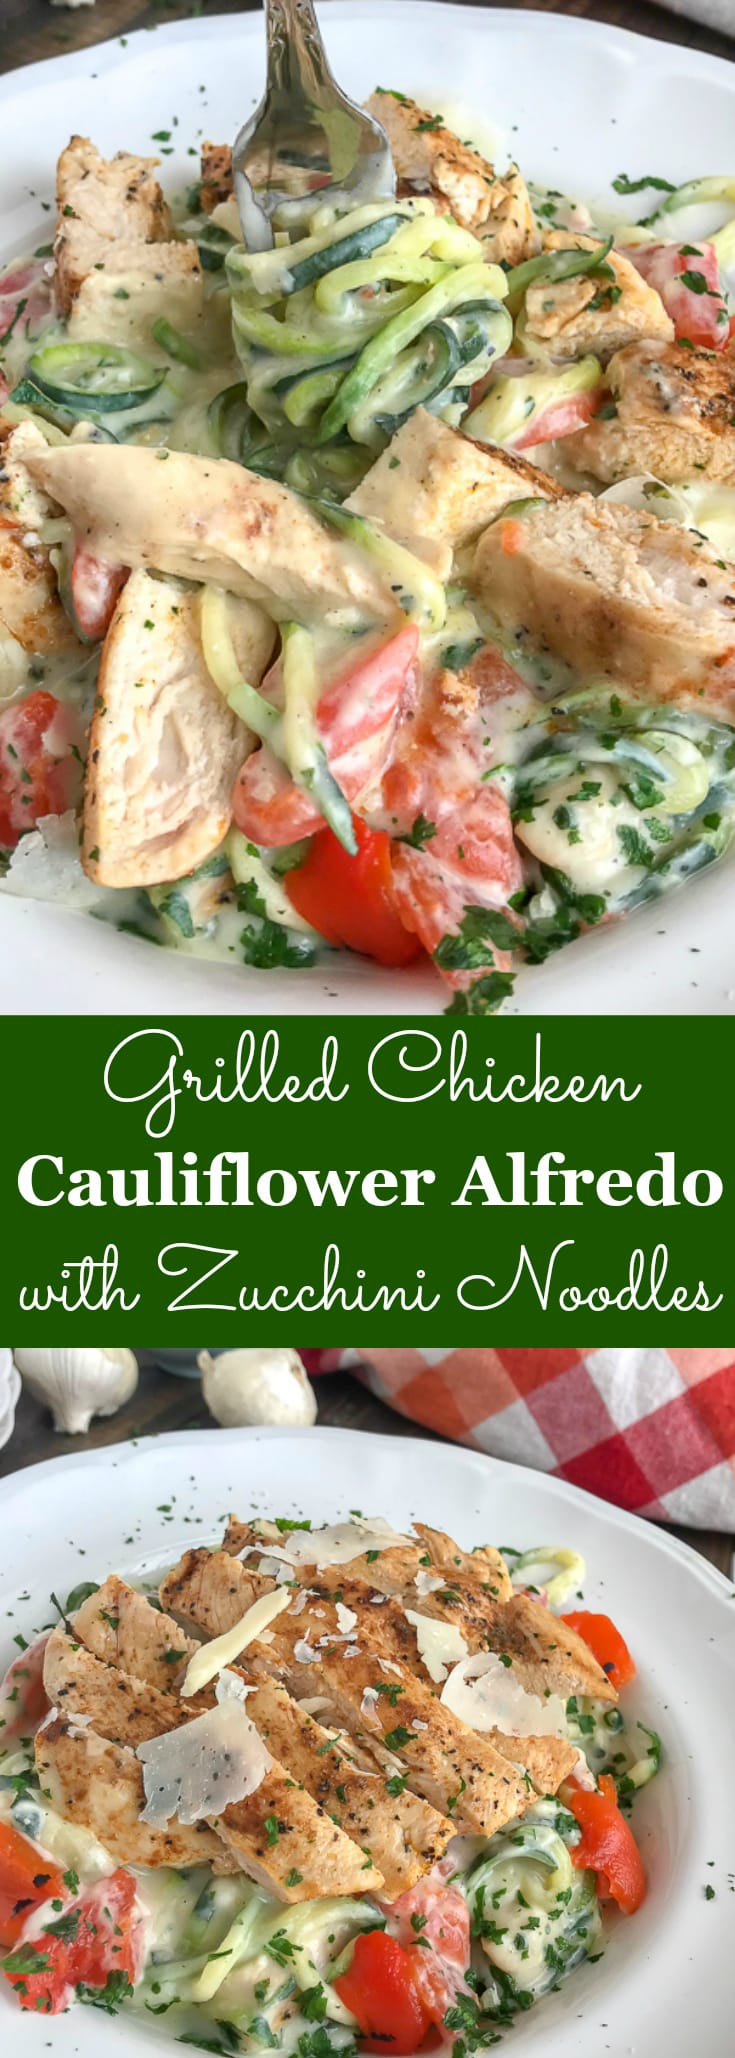 This Grilled Chicken Cauliflower Alfredo with Zucchini Noodles recipe has so much going for it as far as flavor, creaminess, and texture. If you're looking to enjoy a chicken Alfredo dish, but also want to cut back on calories - then this is the recipe for you coming in at under 275 calories per serving! #chicken #chickenalfredo #zucchini #zucchininoodles #zoodles #caulifloweralfredo #alfredo #healthy | https://withpeanutbutterontop.com